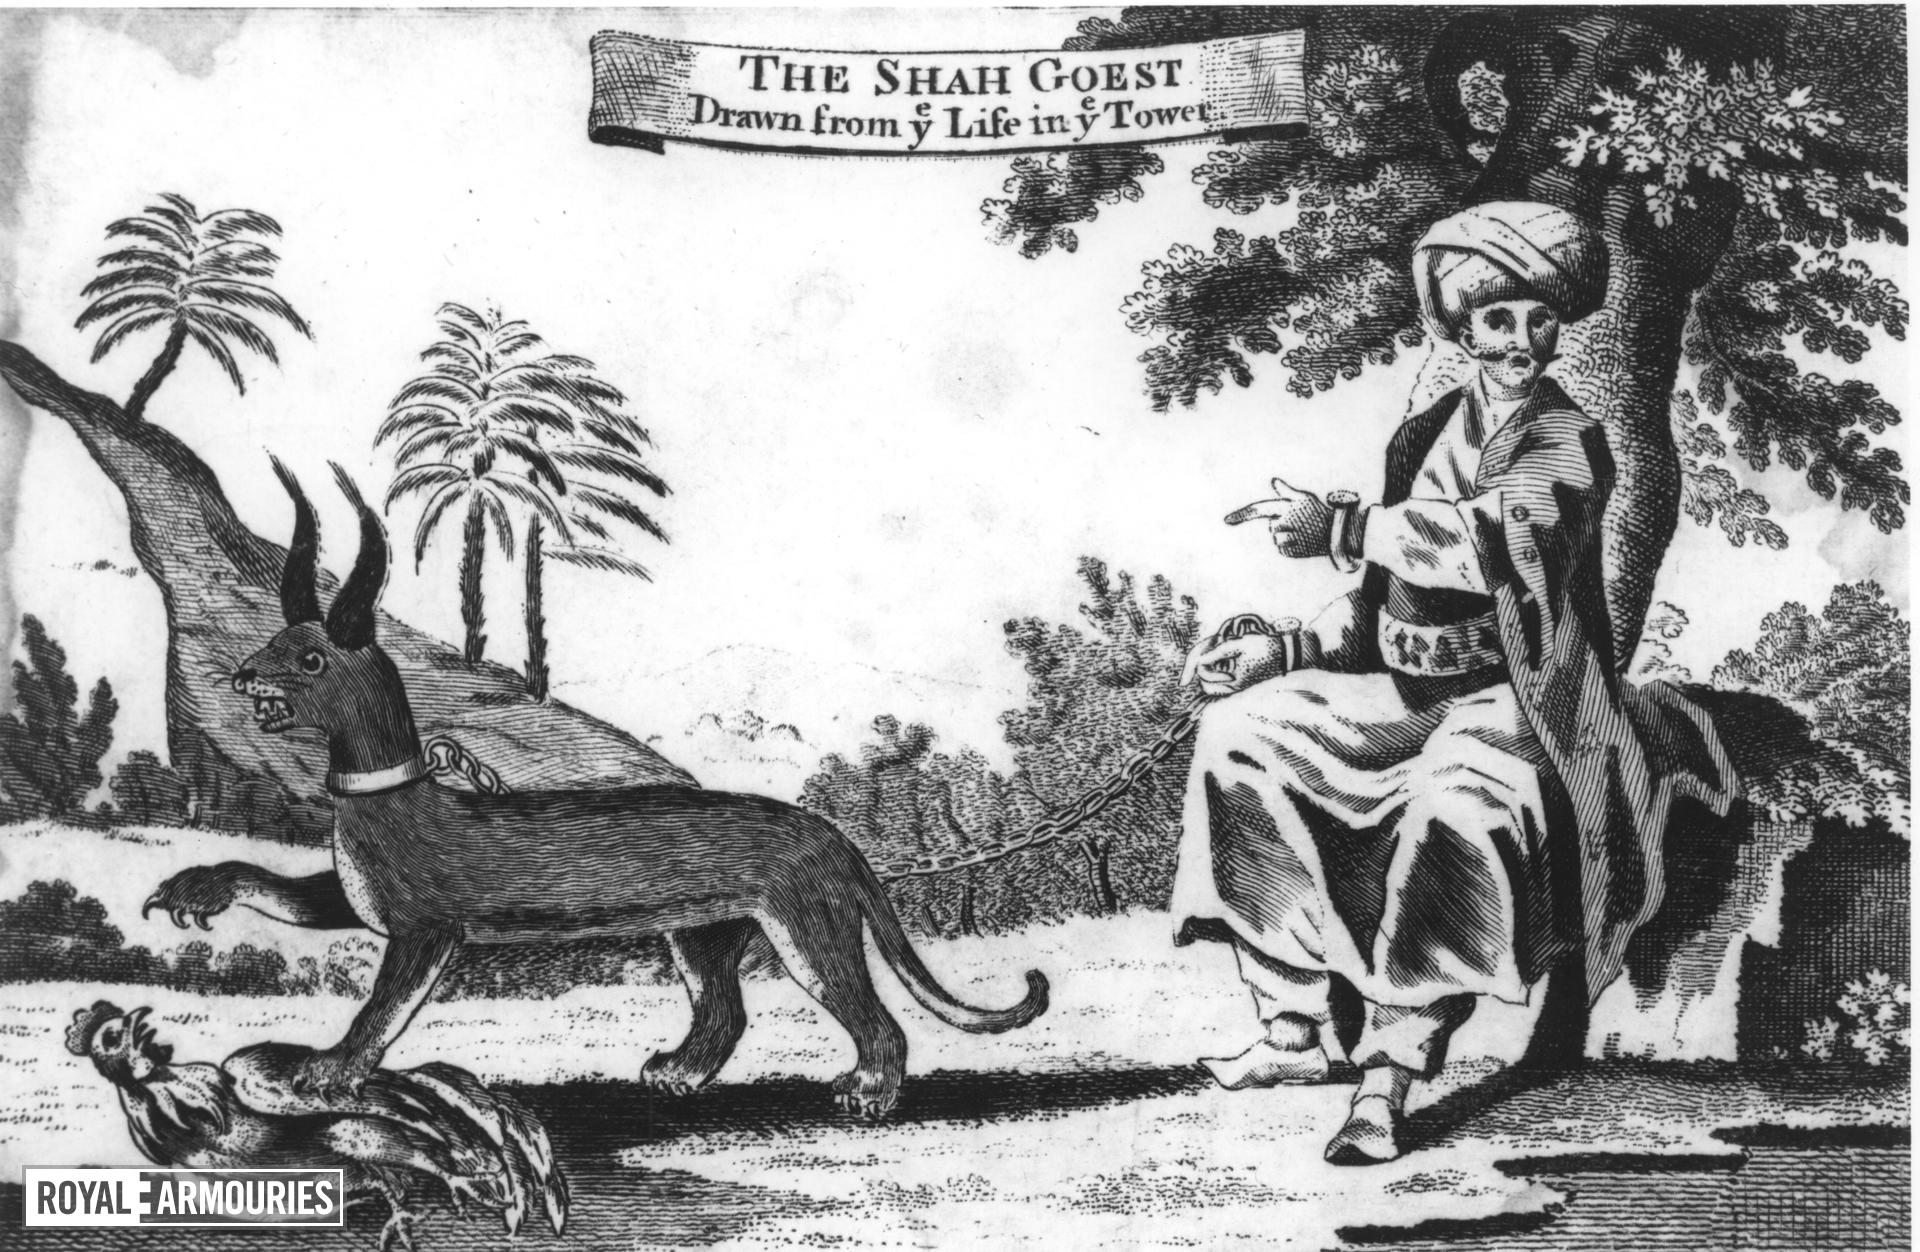 Print Engraved illustration of the 'Shah Goest' and its keeper.